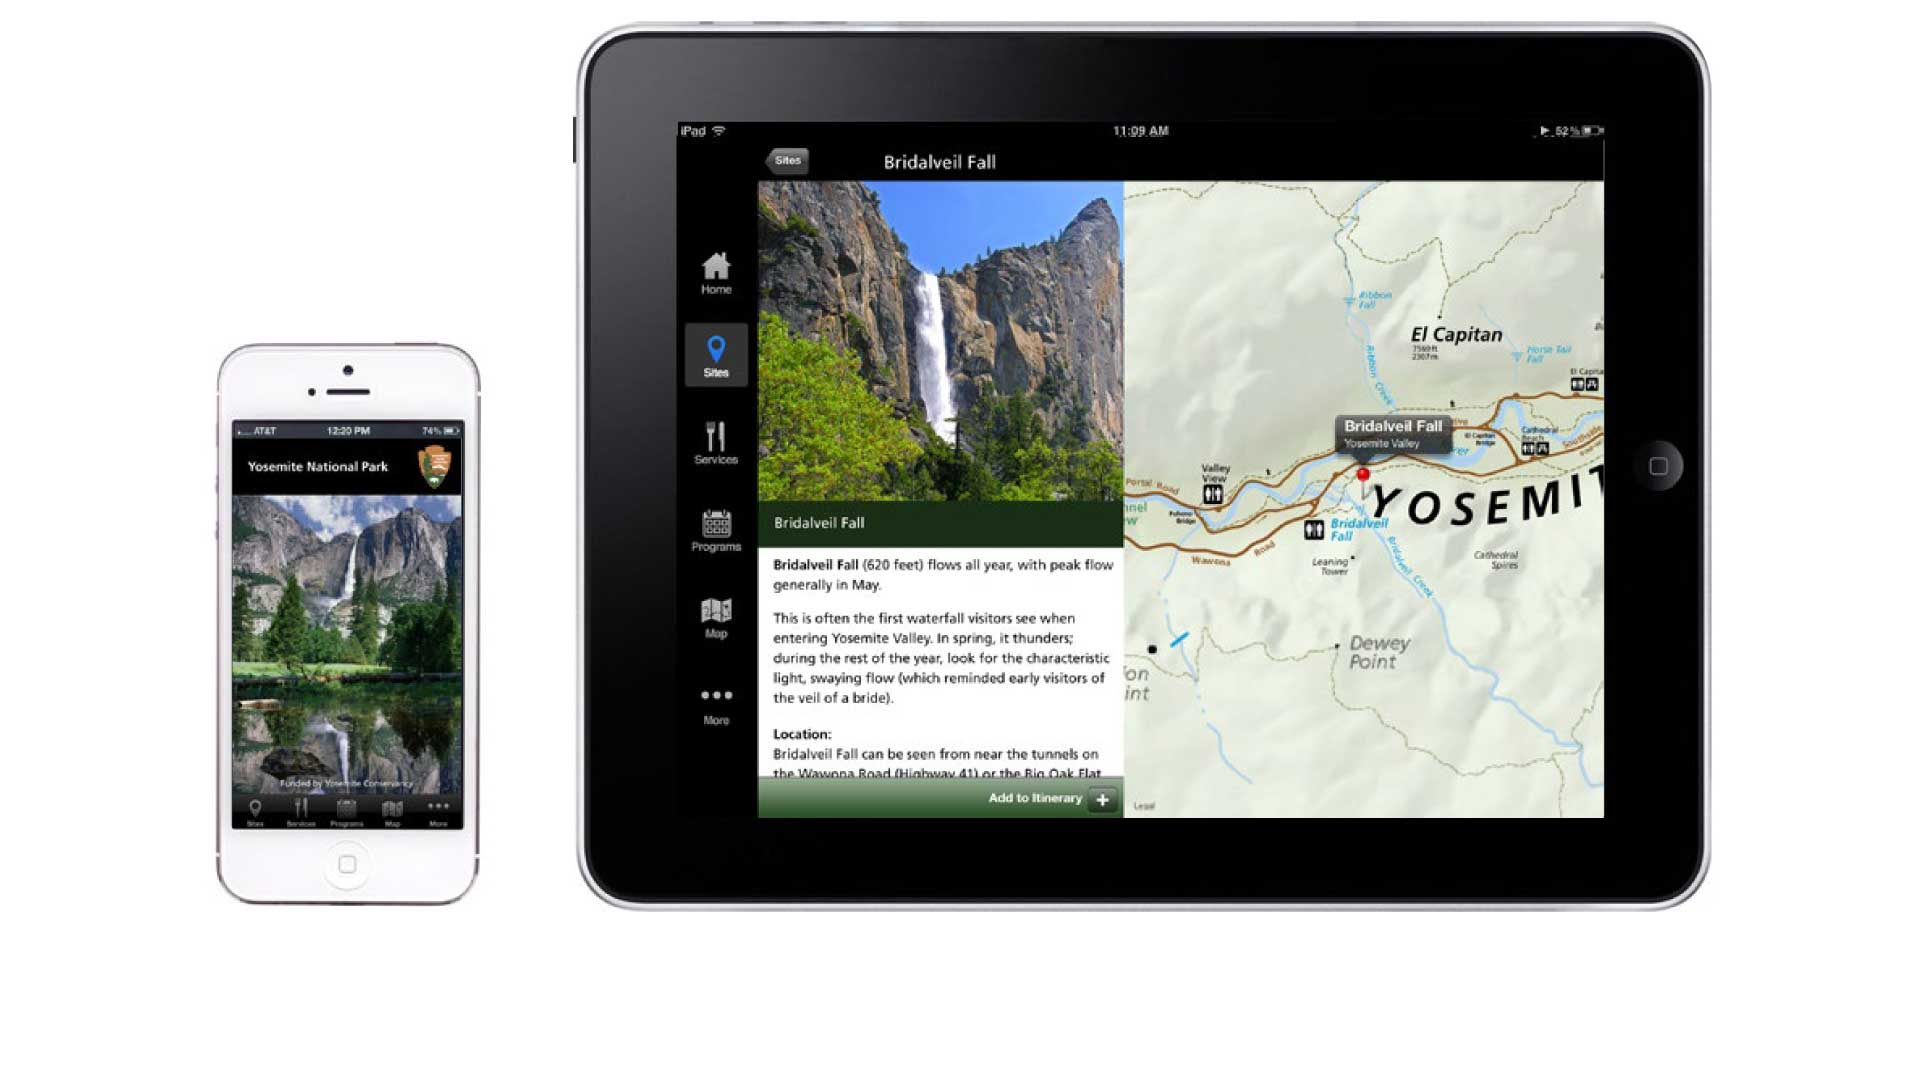 iPhone and iPad side by side showing the launch screen and sample interface screens from the NPS Yosemite app